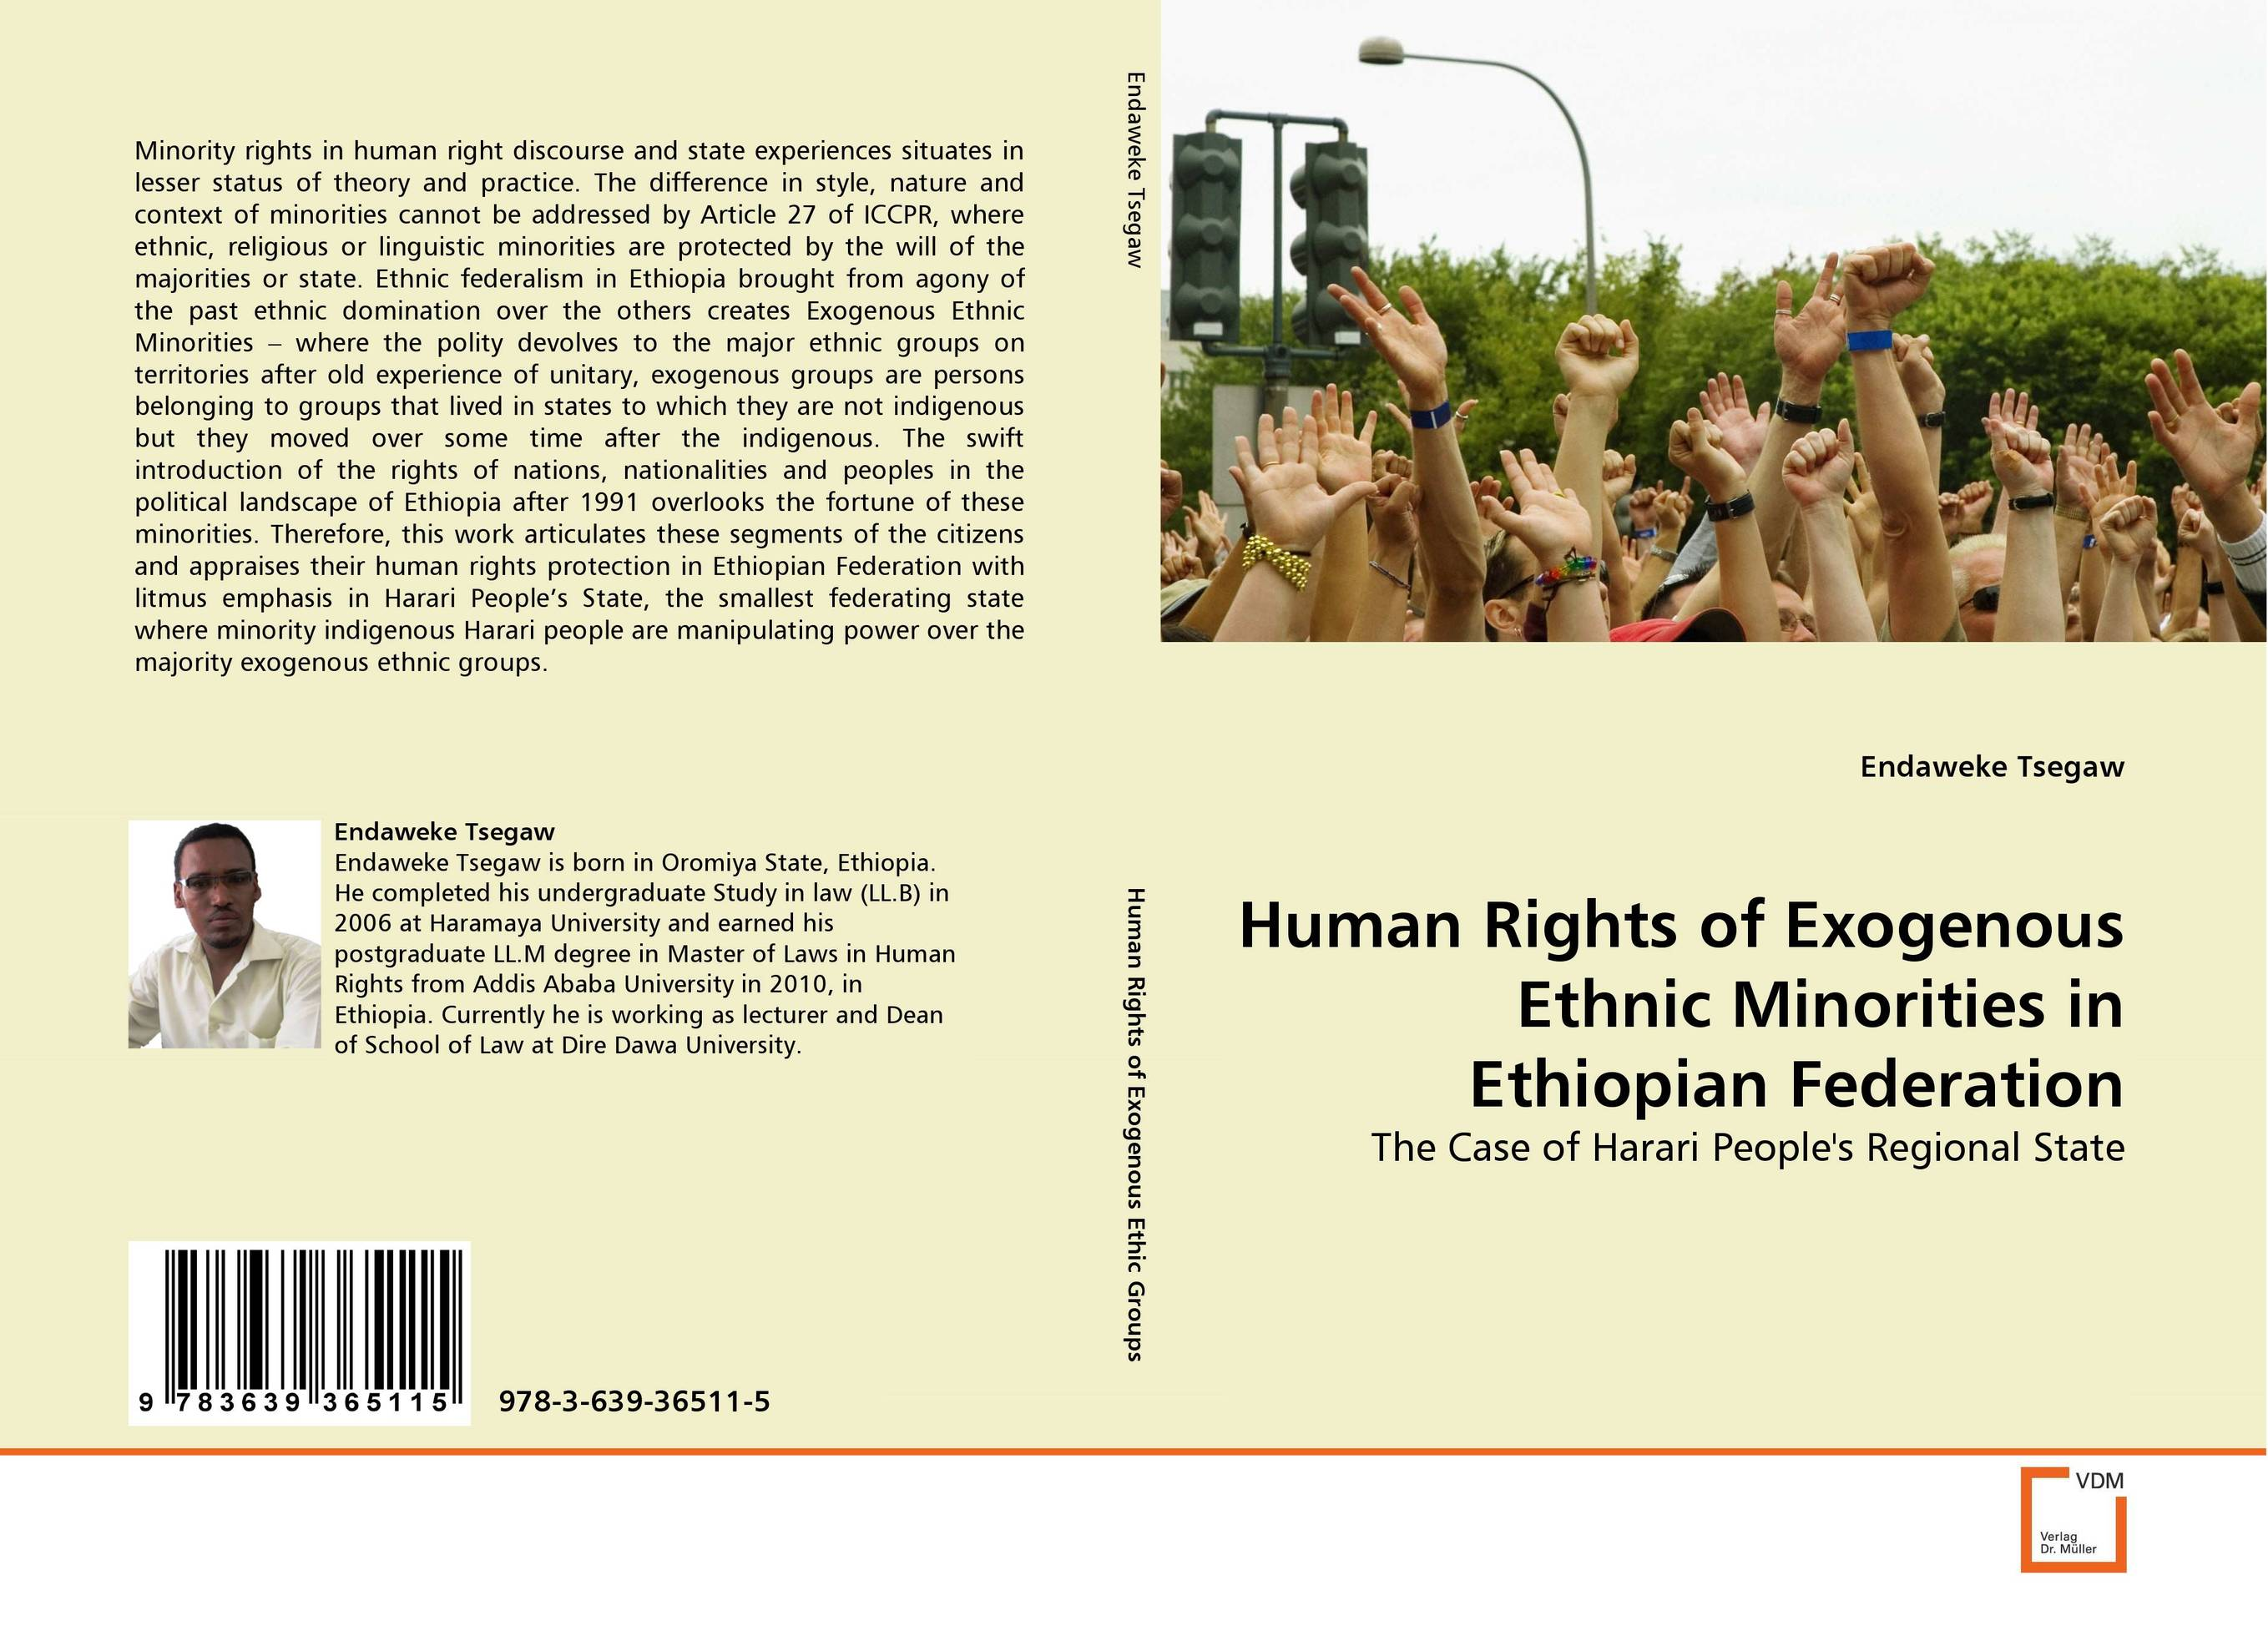 Human Rights of Exogenous Ethnic Minorities in Ethiopian Federation uc2844an uc2844 dip8